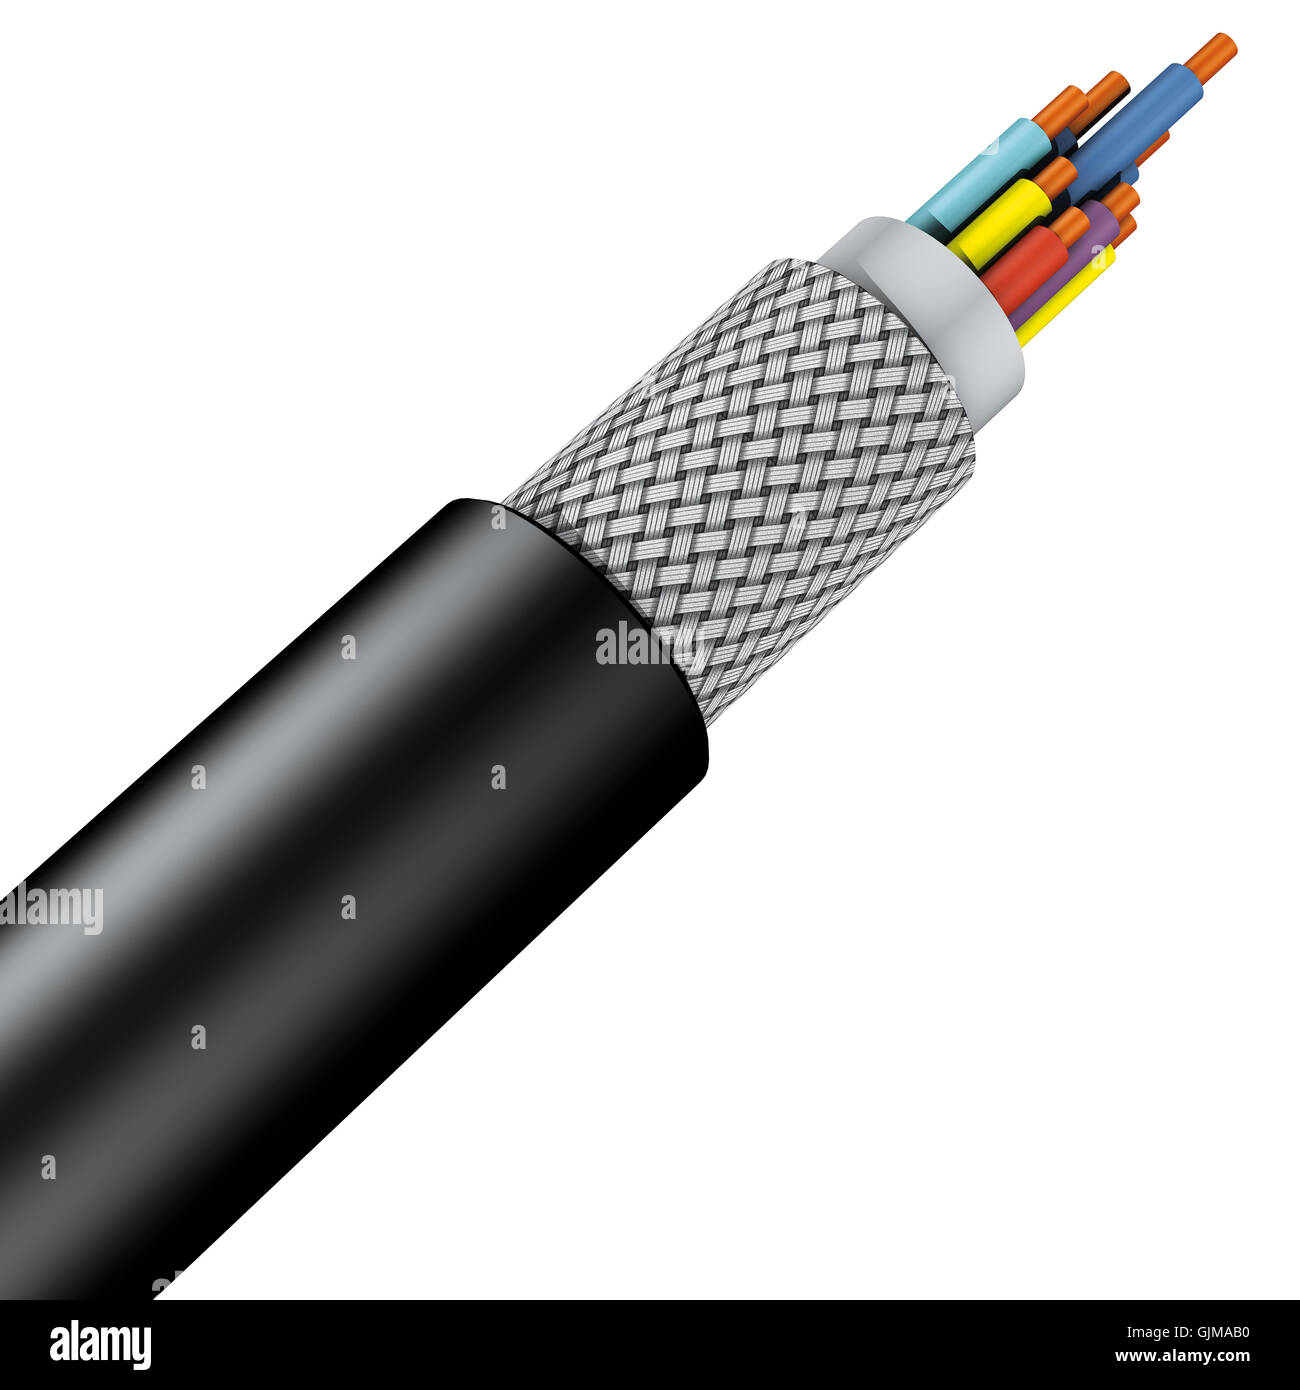 Armoured Cable Stock Photos & Armoured Cable Stock Images - Alamy